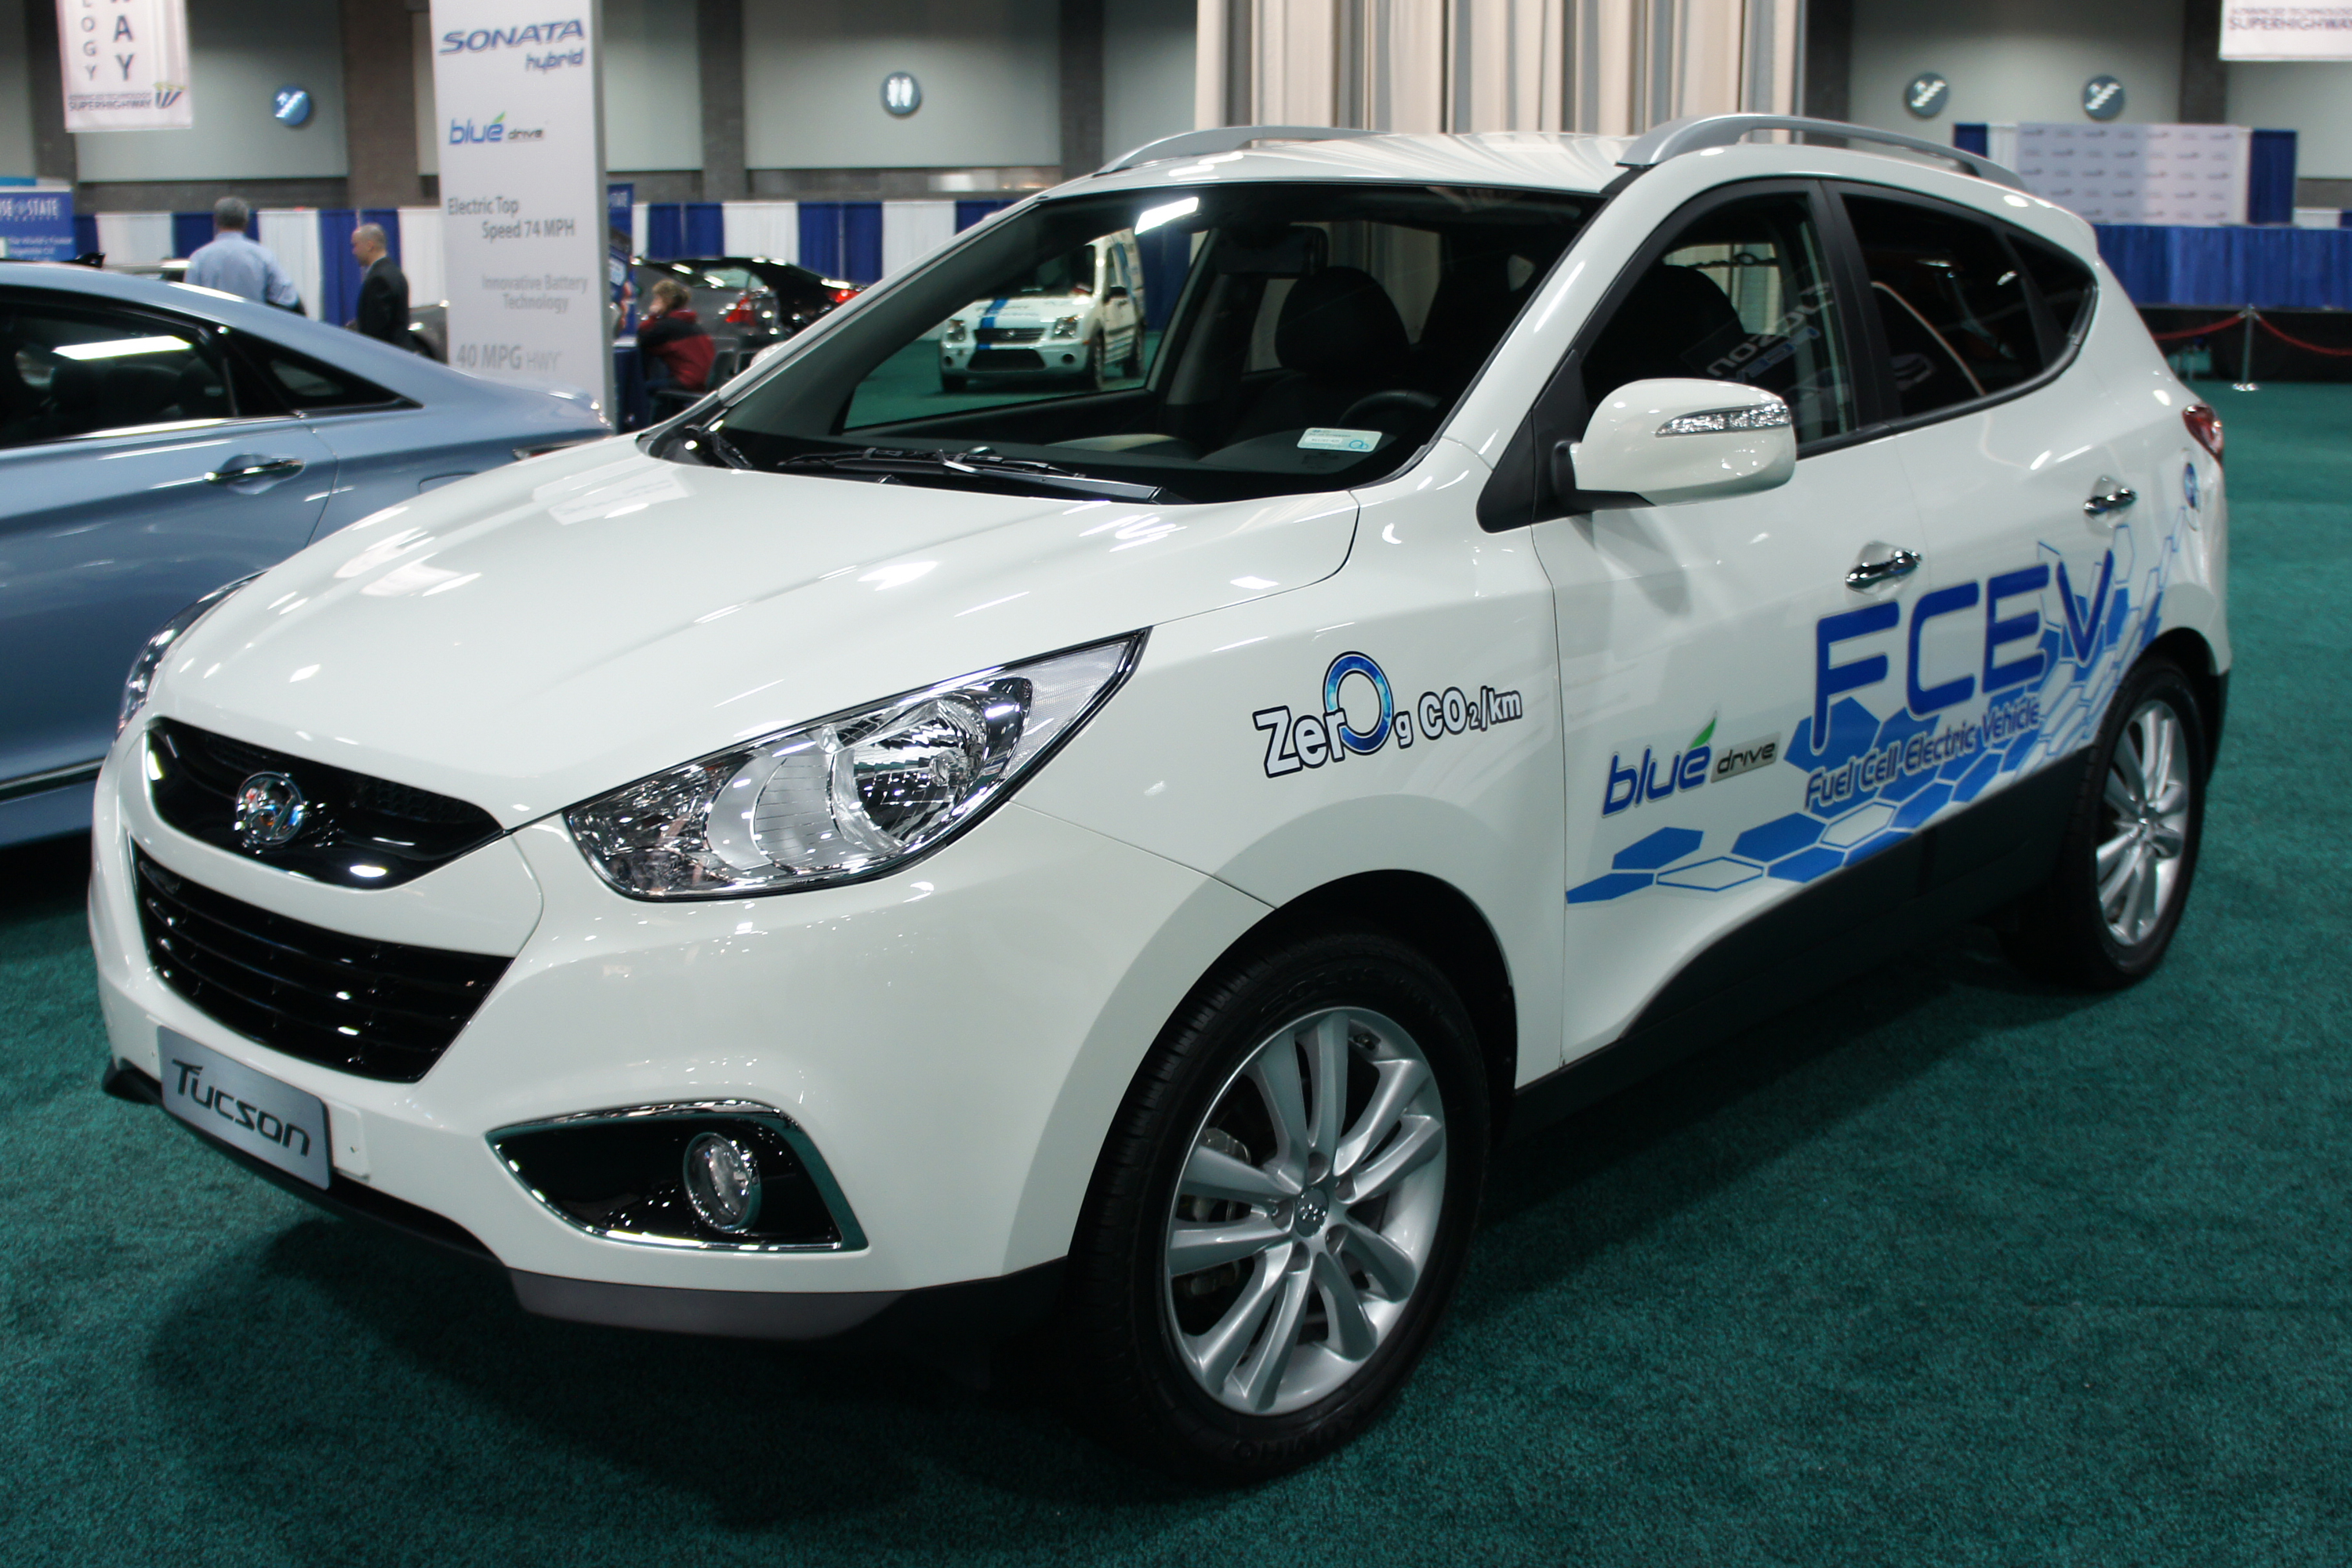 What Is A Fuel Cell >> File:Hyundai Tucson FCEV WAS 2012 0762.JPG - Wikimedia Commons